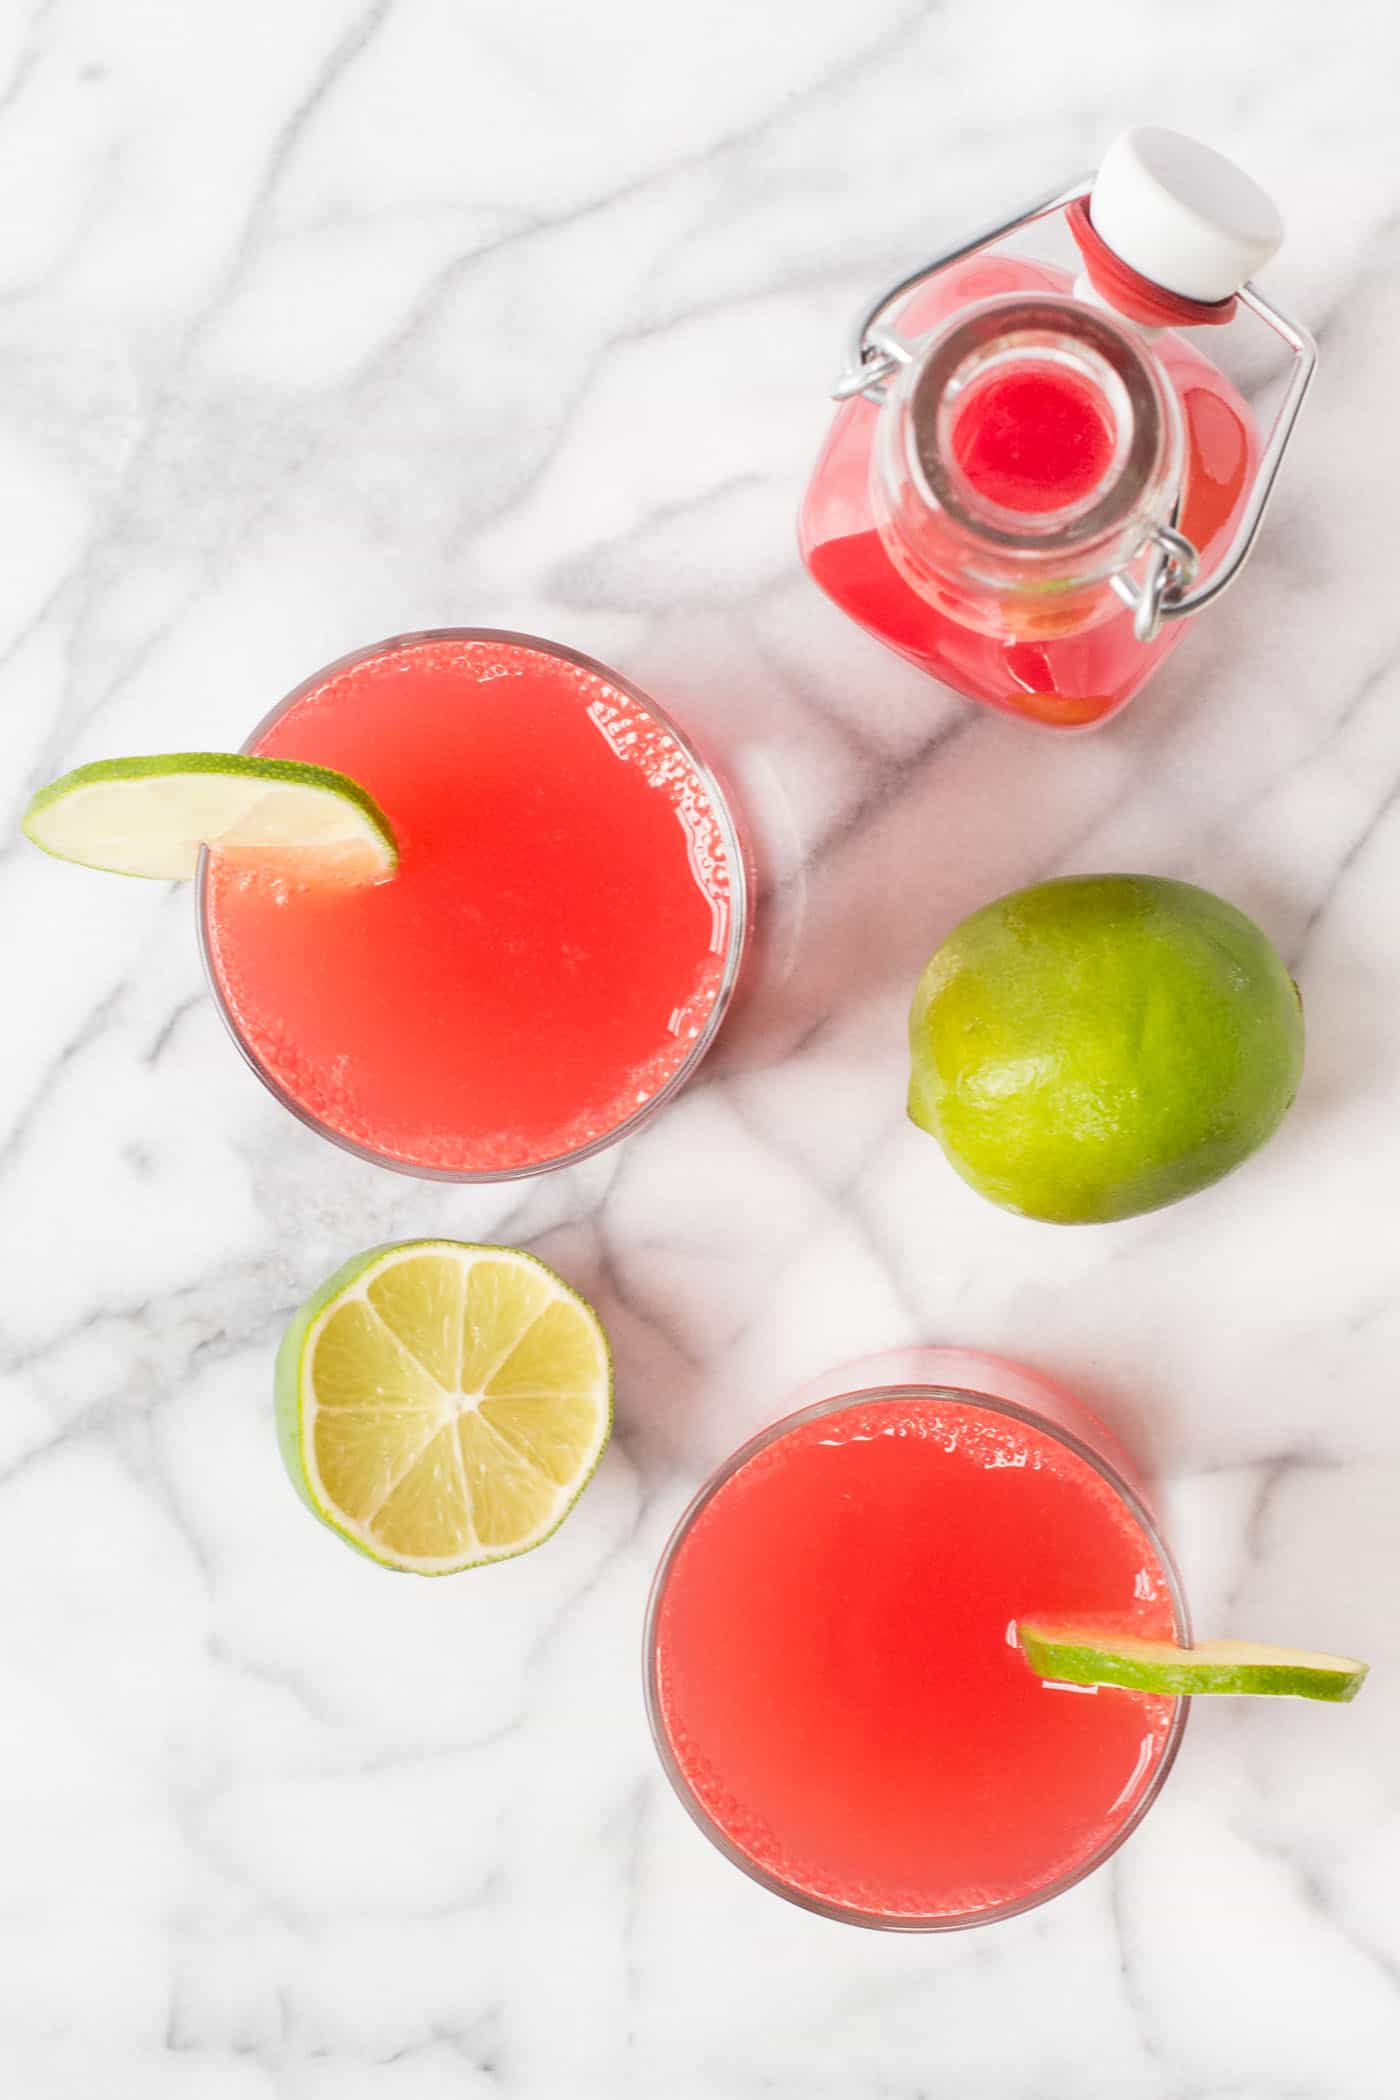 Looking for a healthy summer cocktail recipe? Try these Watermelon Lime Spritzers! They're only three ingredients, sweetened naturally, and are light, crisp and refreshing!